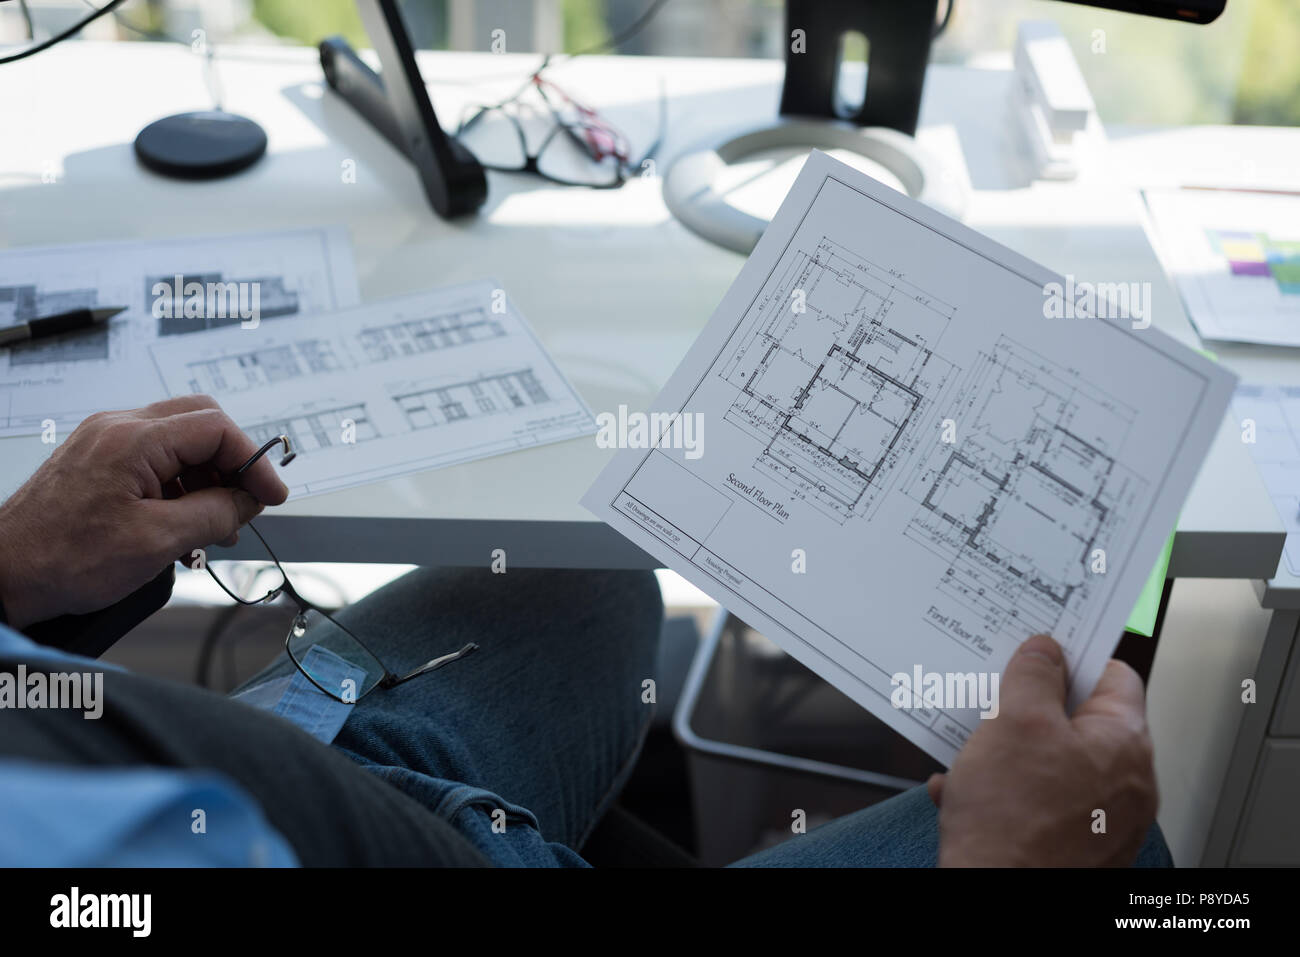 Man looking at architectural chart - Stock Image